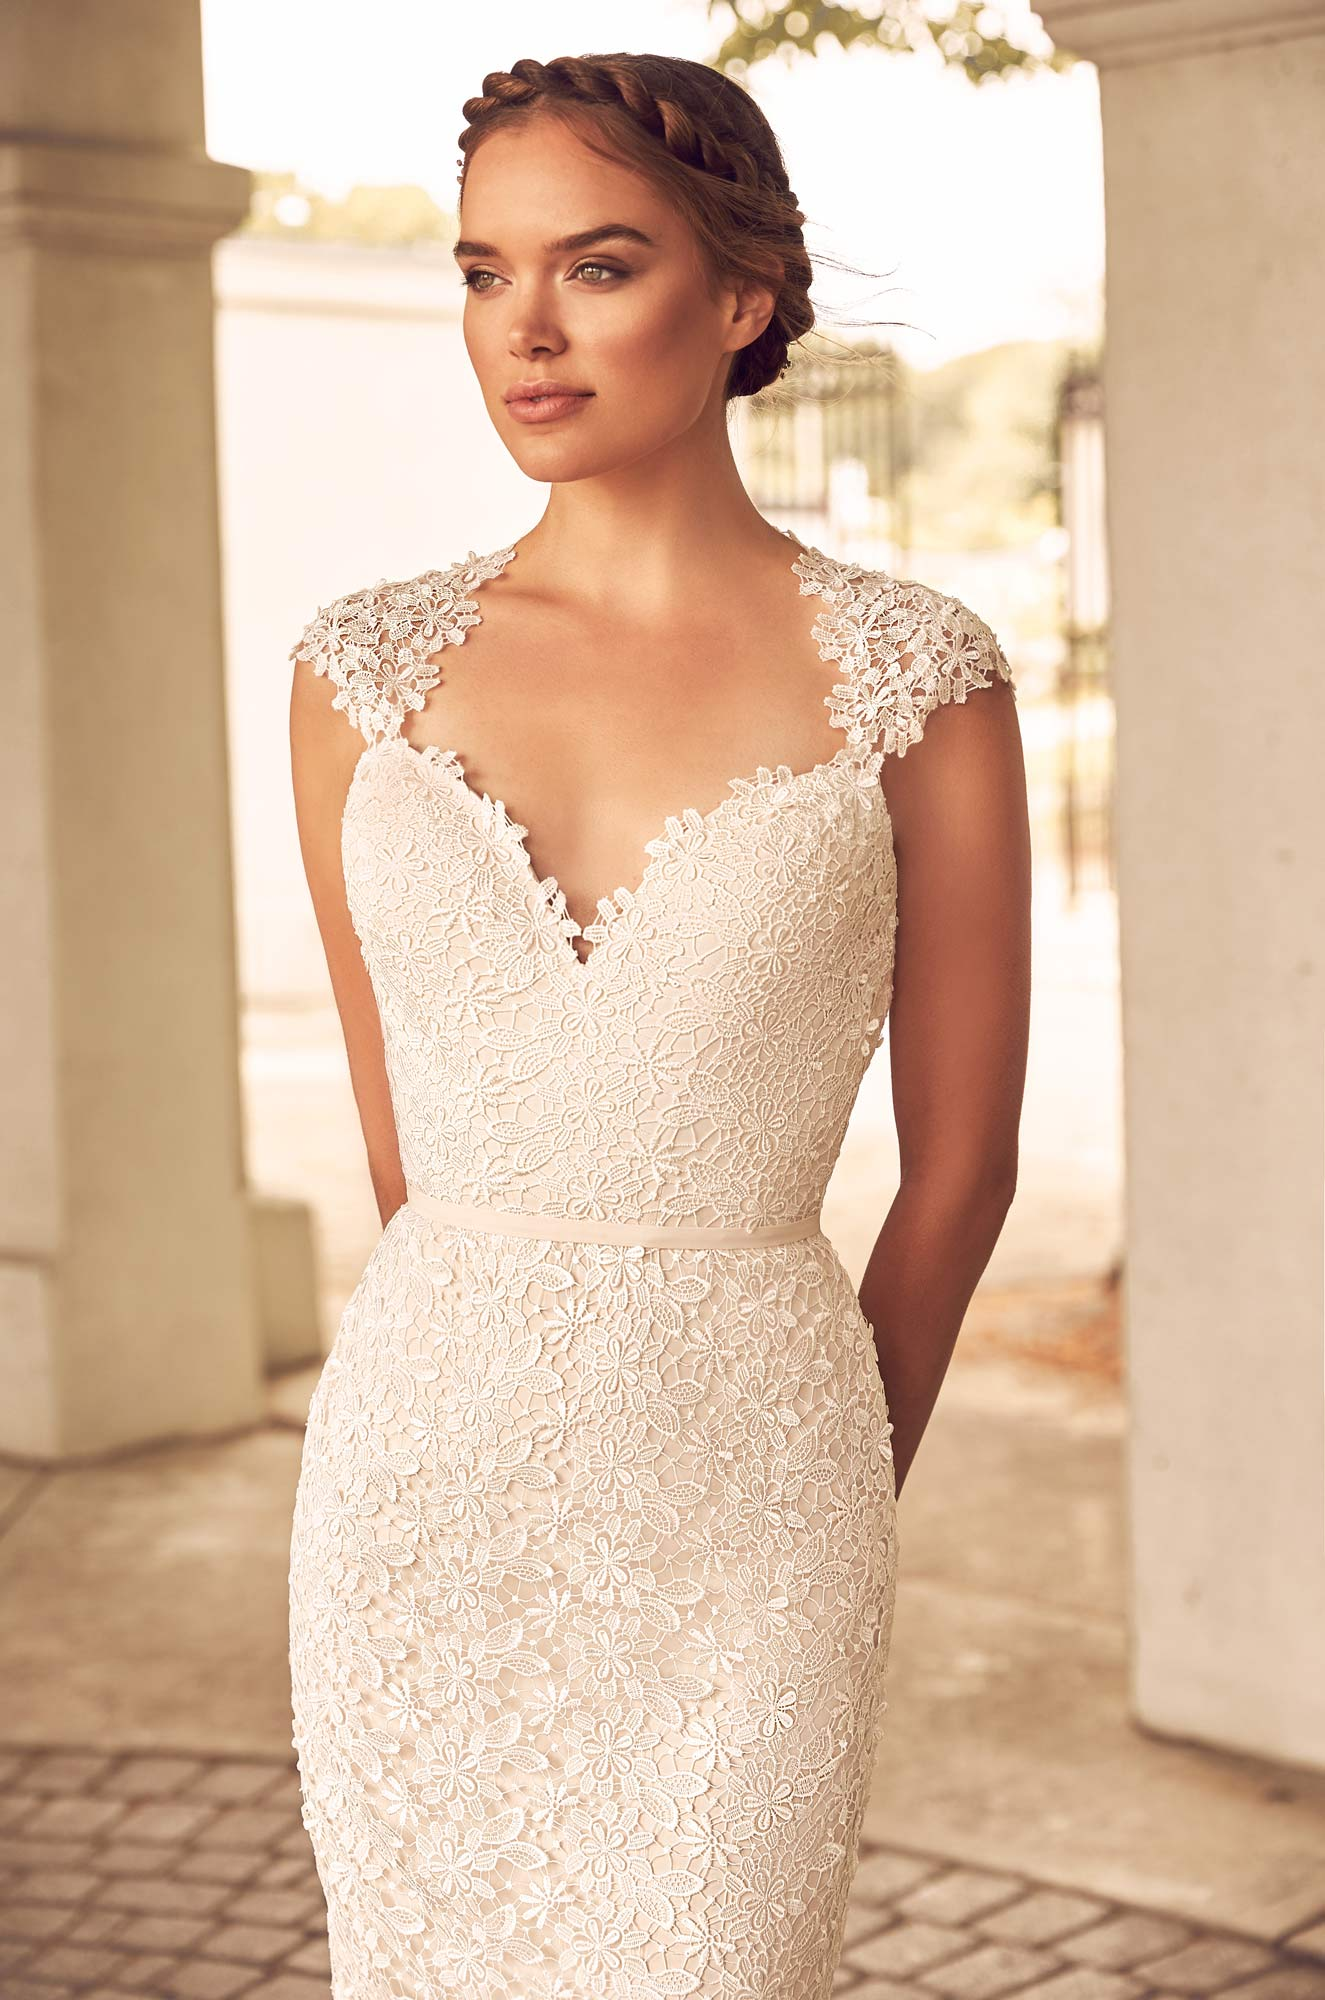 Floral Lace Wedding Dress – Style #4784 | Paloma Blanca